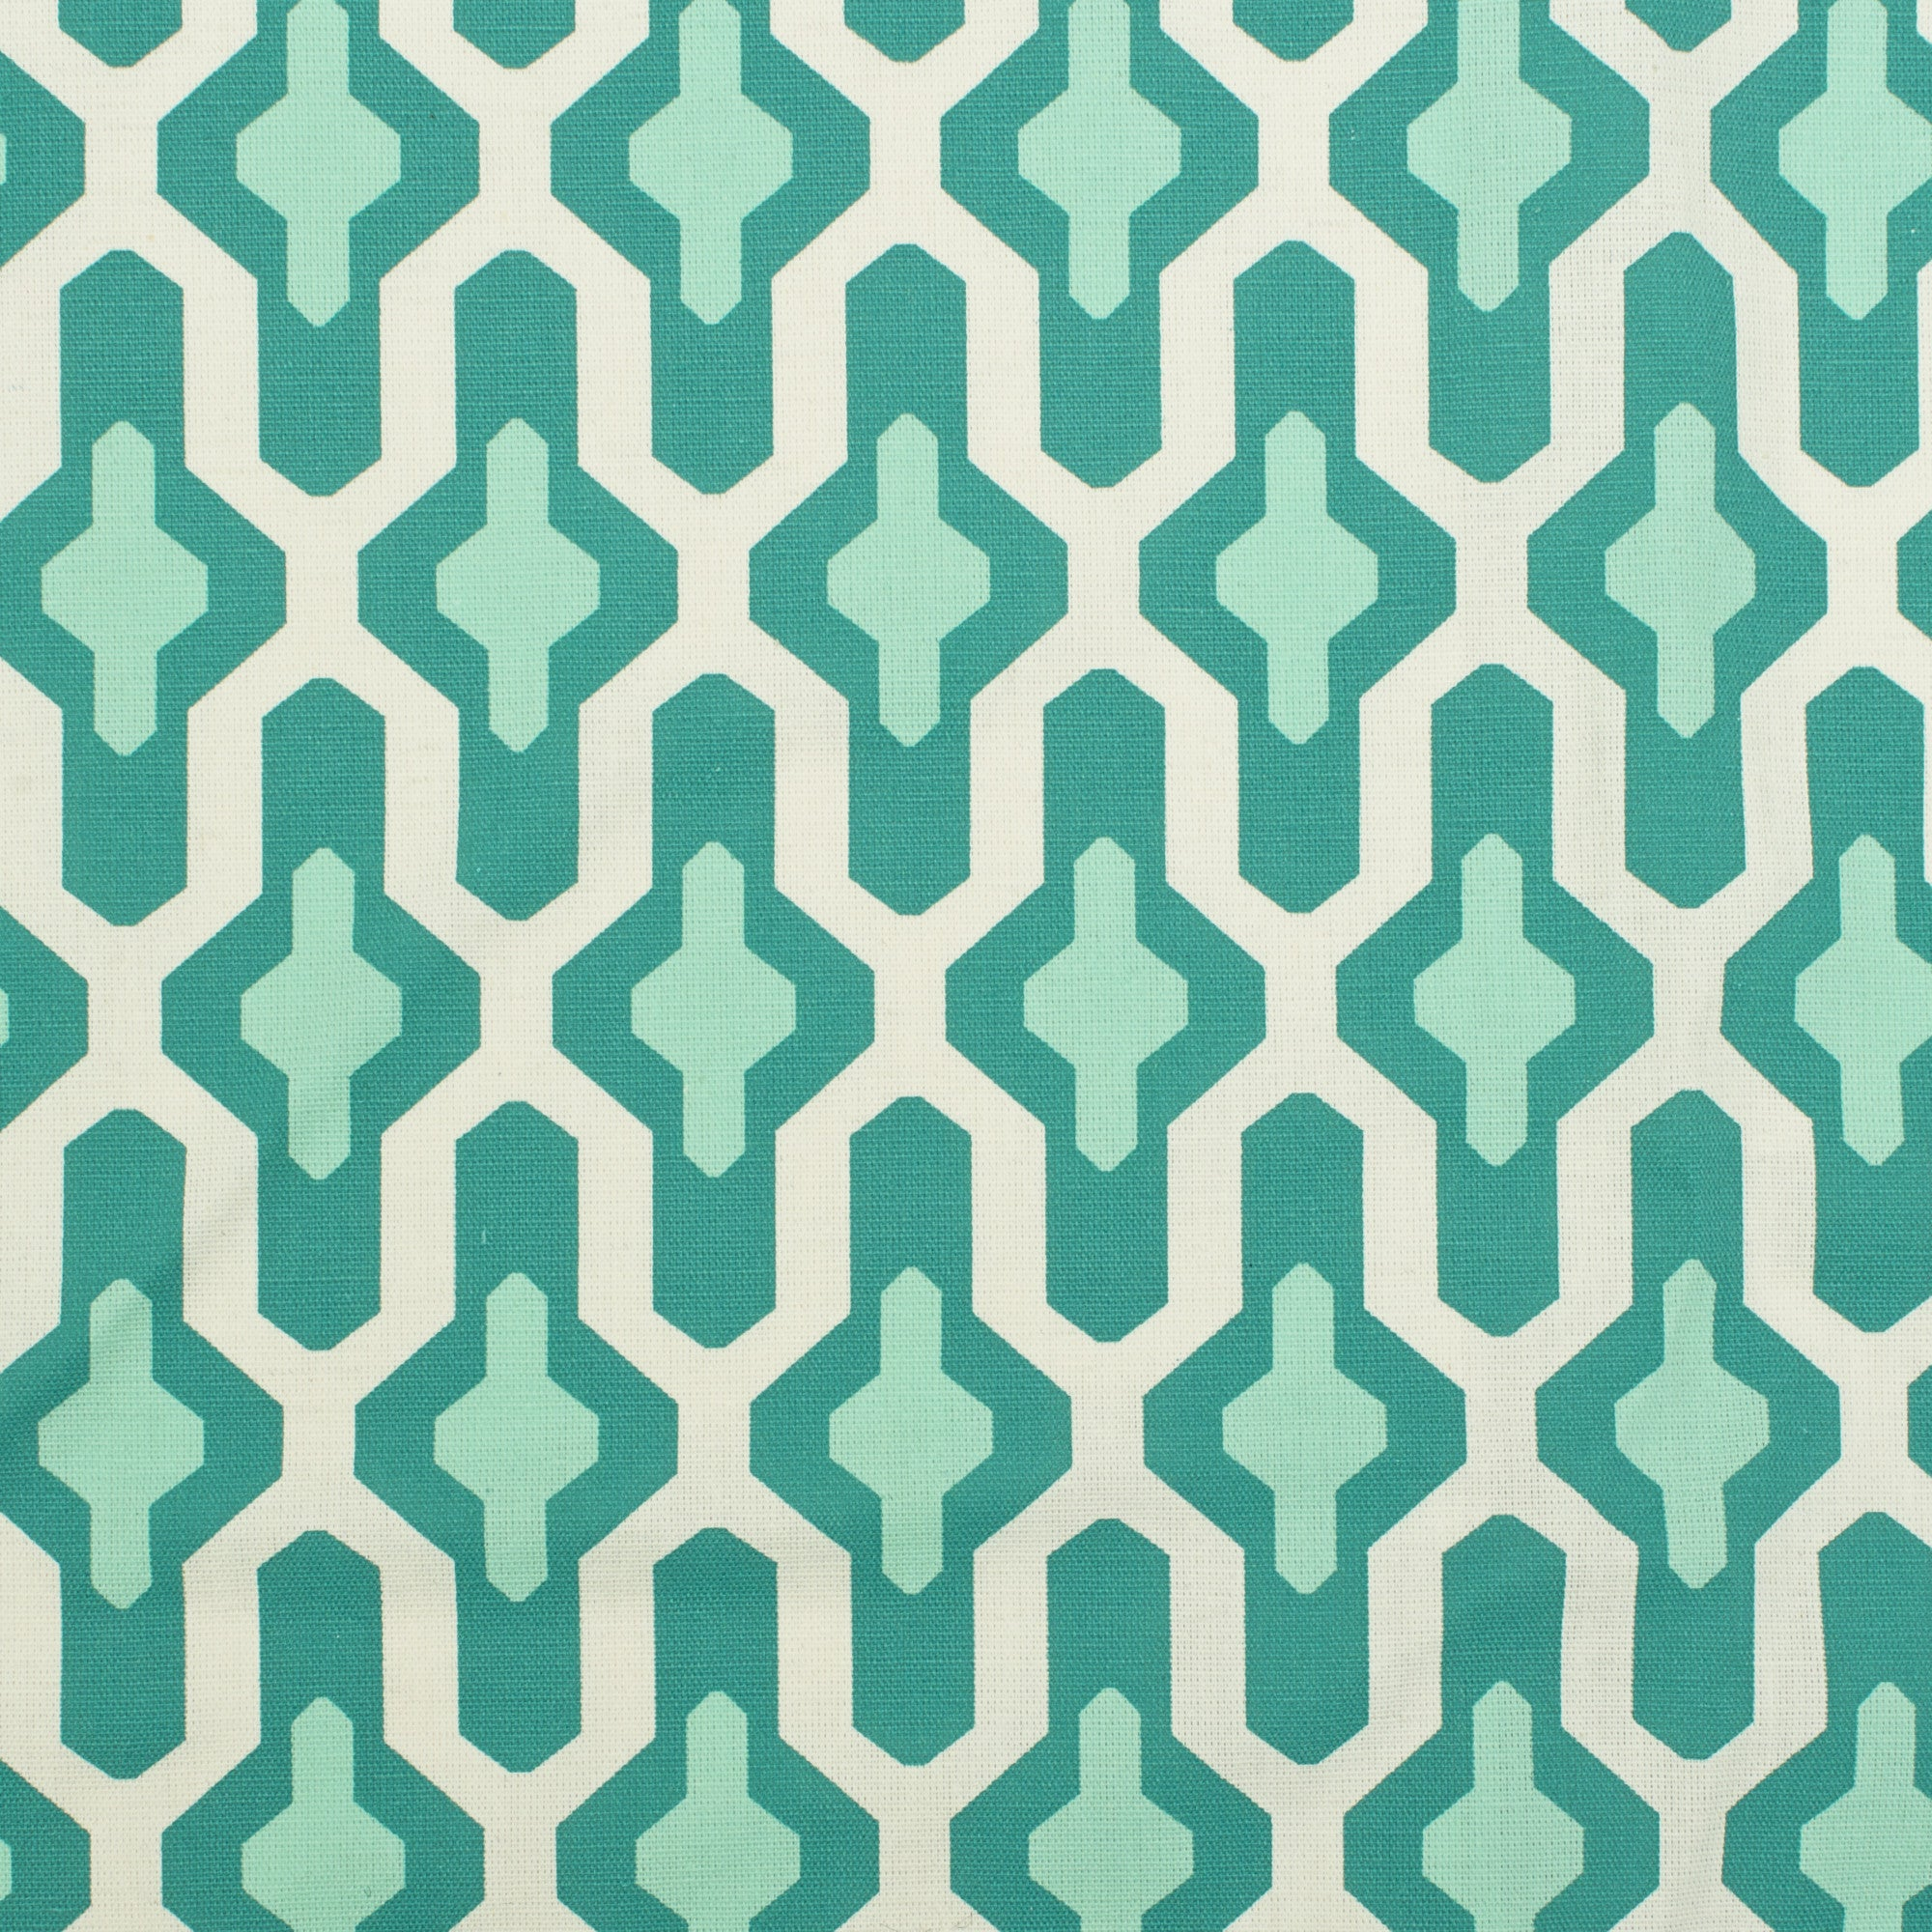 LR Resources DRAPES AND CURTAINS 17014 Teal